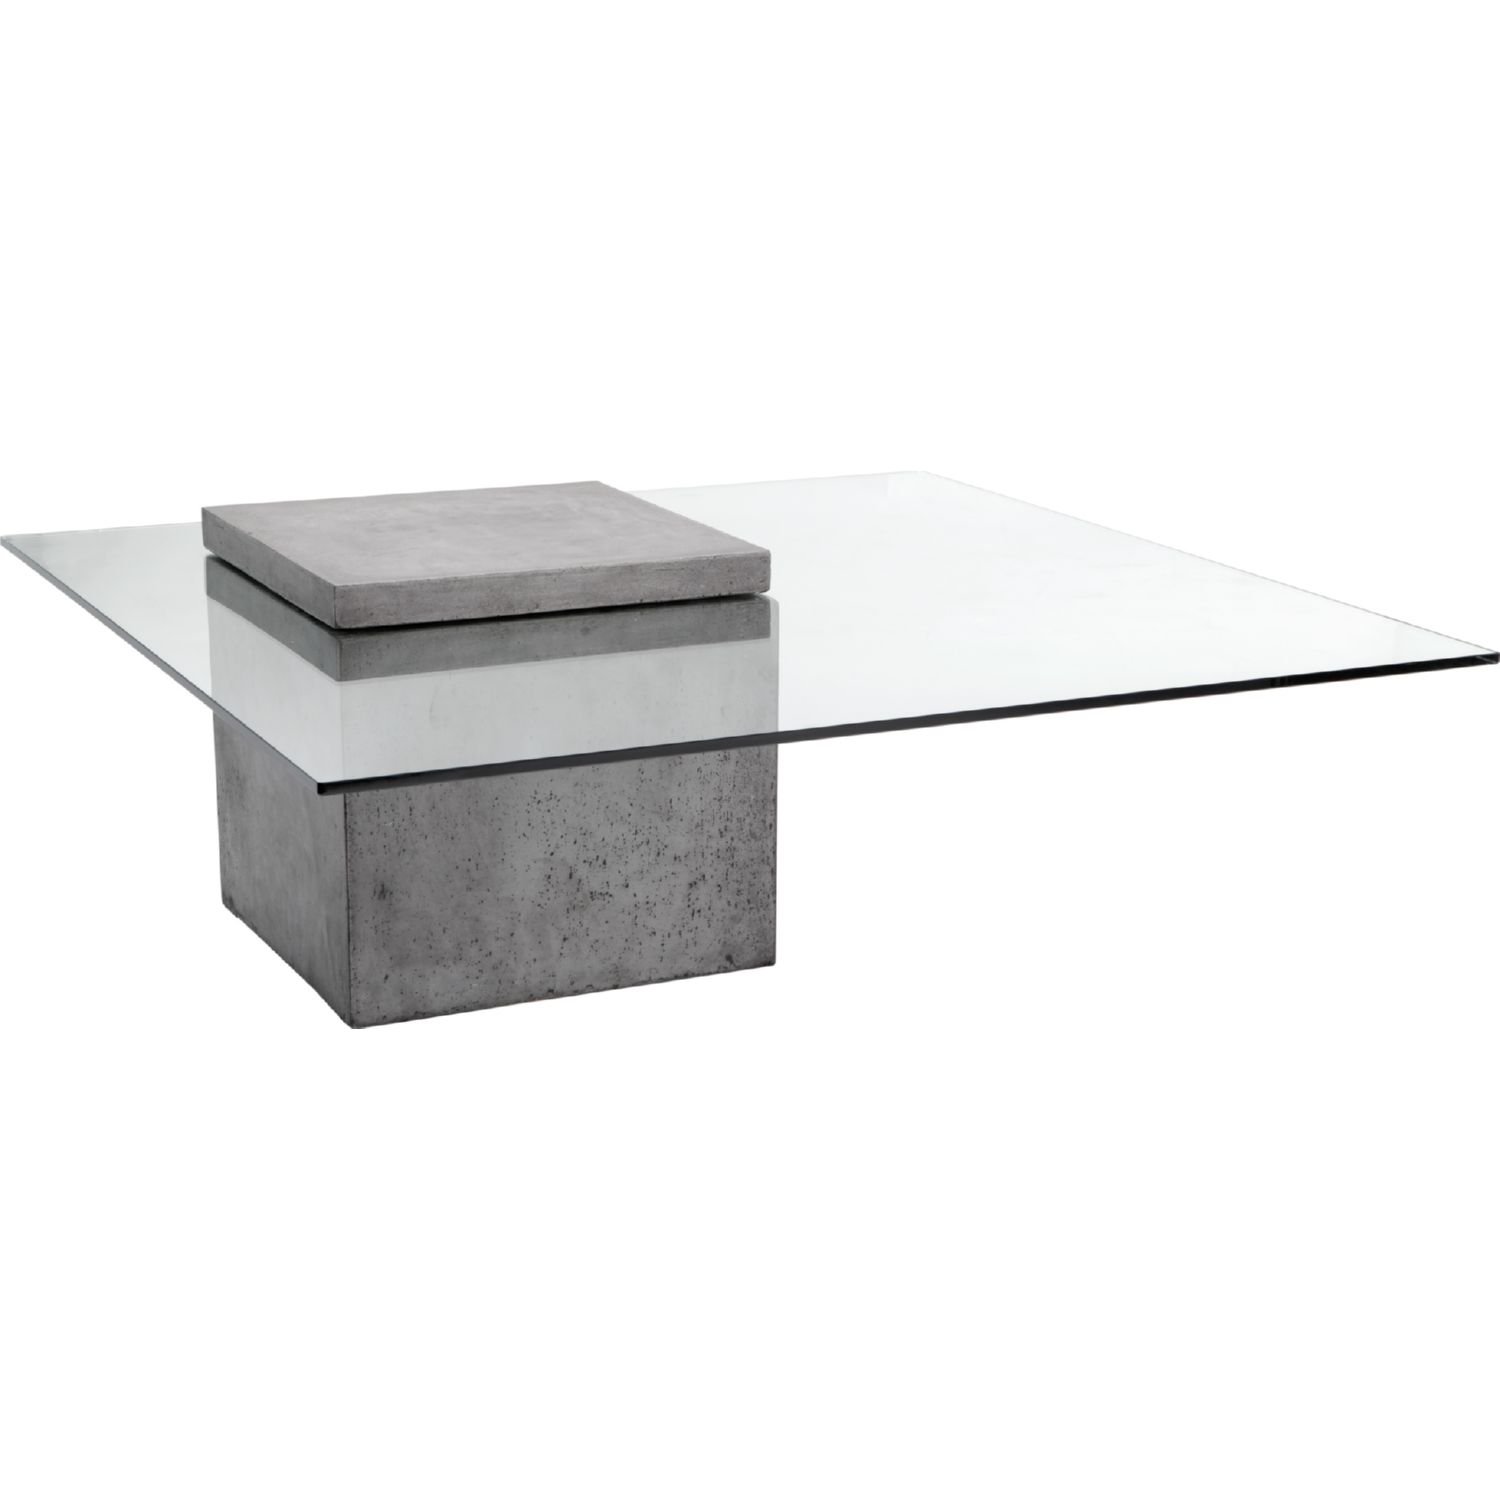 Sunpan Grange Coffee Table in Sealed Concrete & Tempered Glass